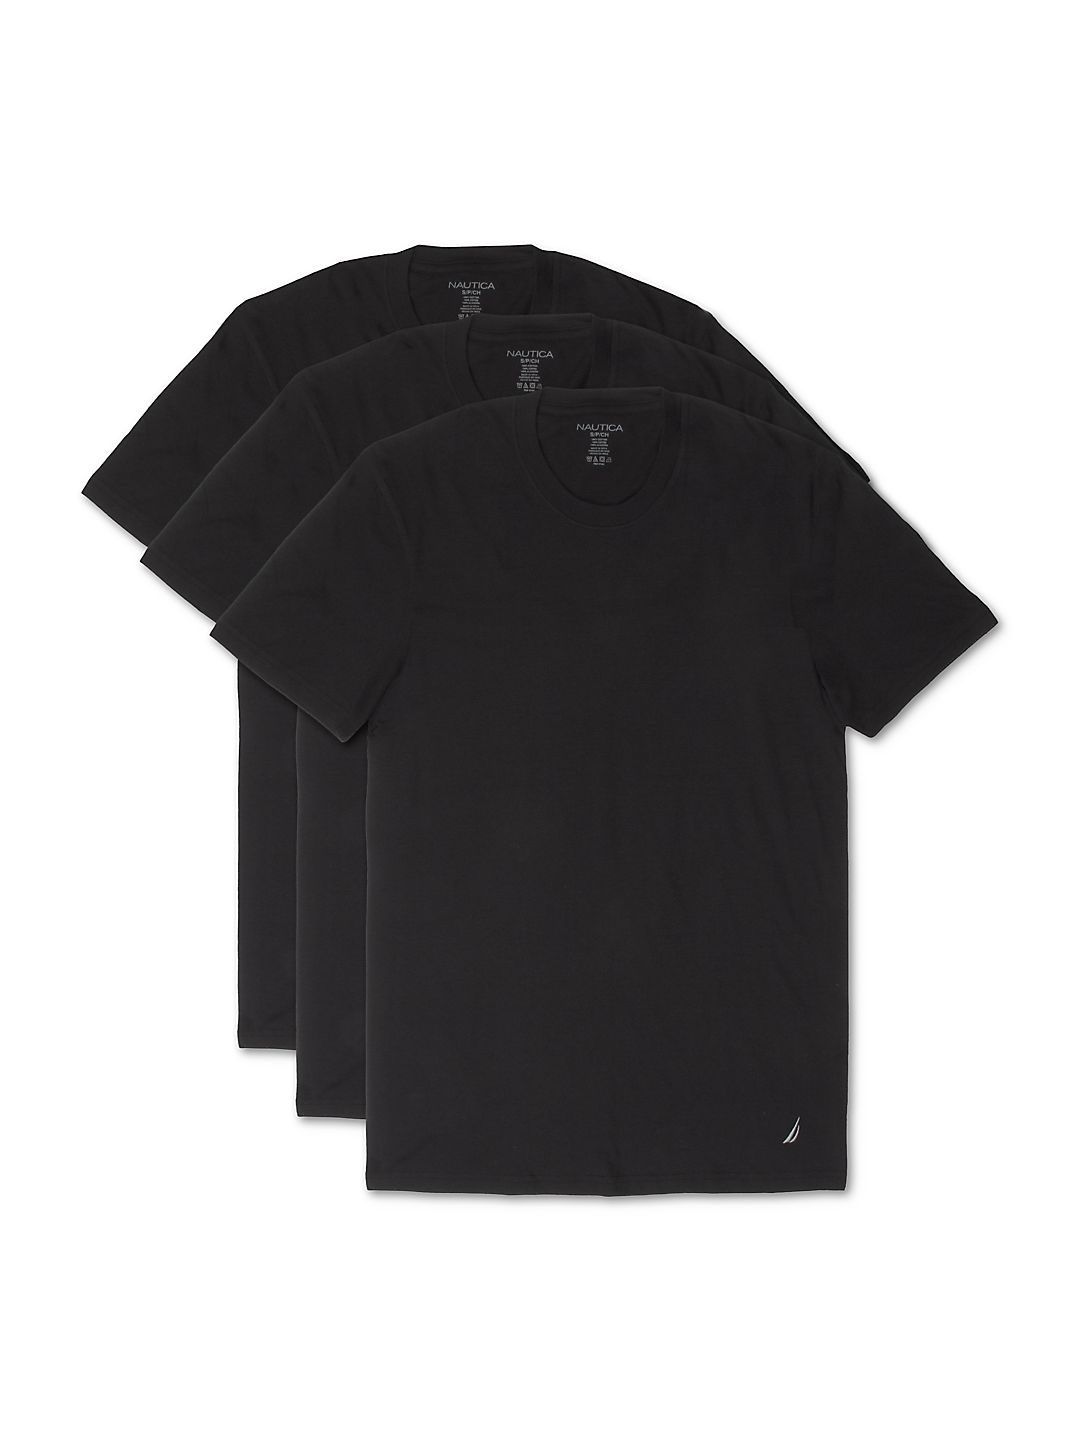 Three-Pack Assorted Crewneck Cotton Tee Set